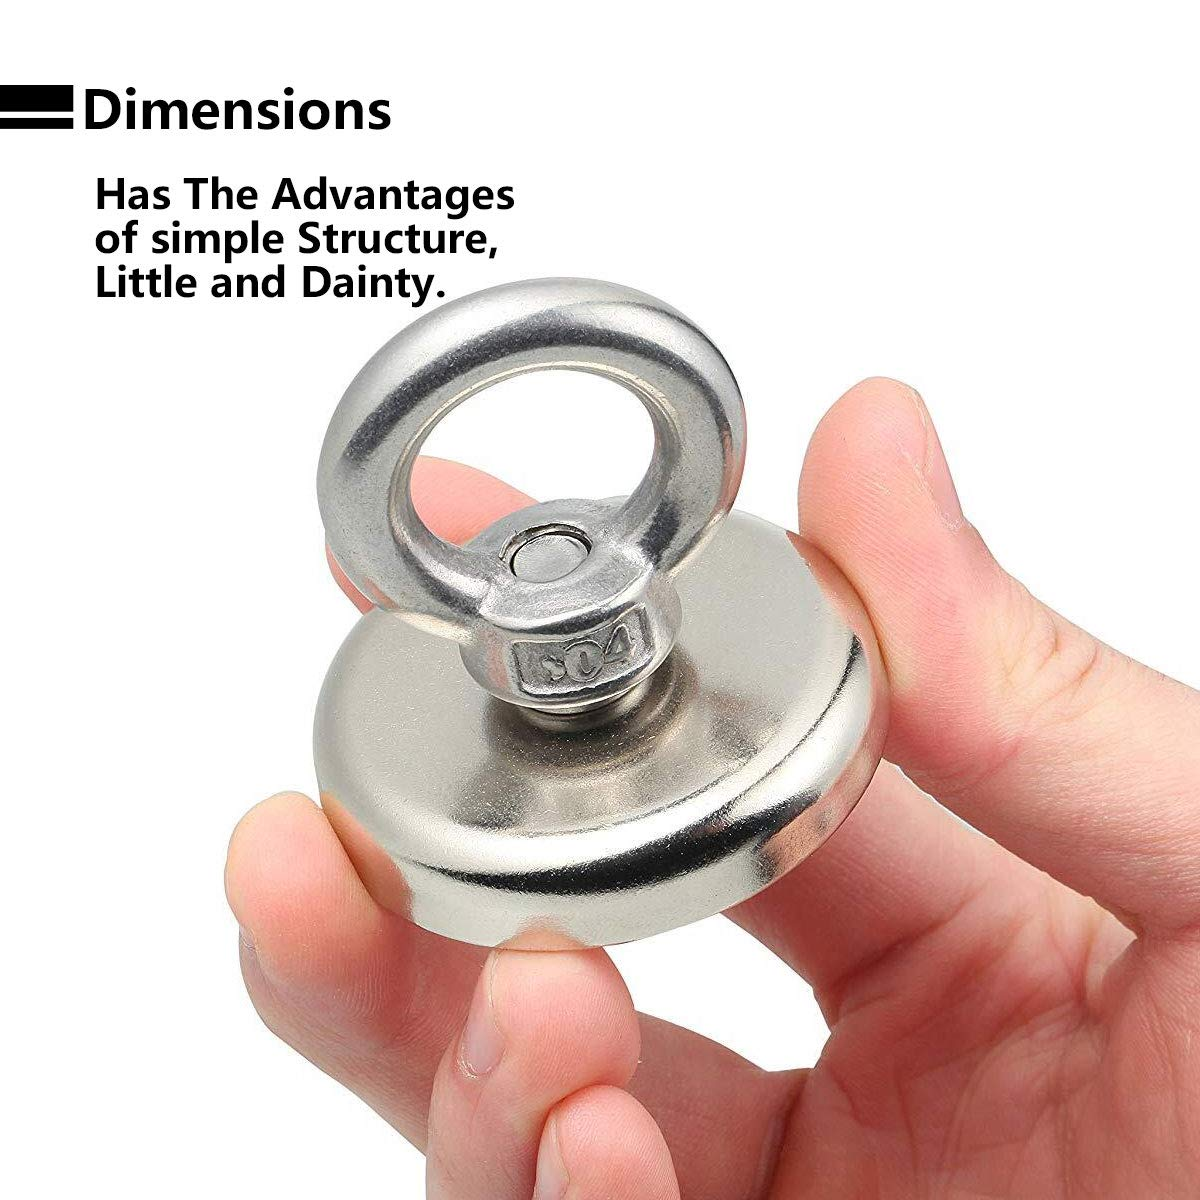 for Multi-Purpose Strong Magnet,165 LB Super Powerful Pulling Force Round Neodymium Magnet with Countersunk Hole and Eyebolt,Diameter 1.89INCH 1PC Njd48 48MM